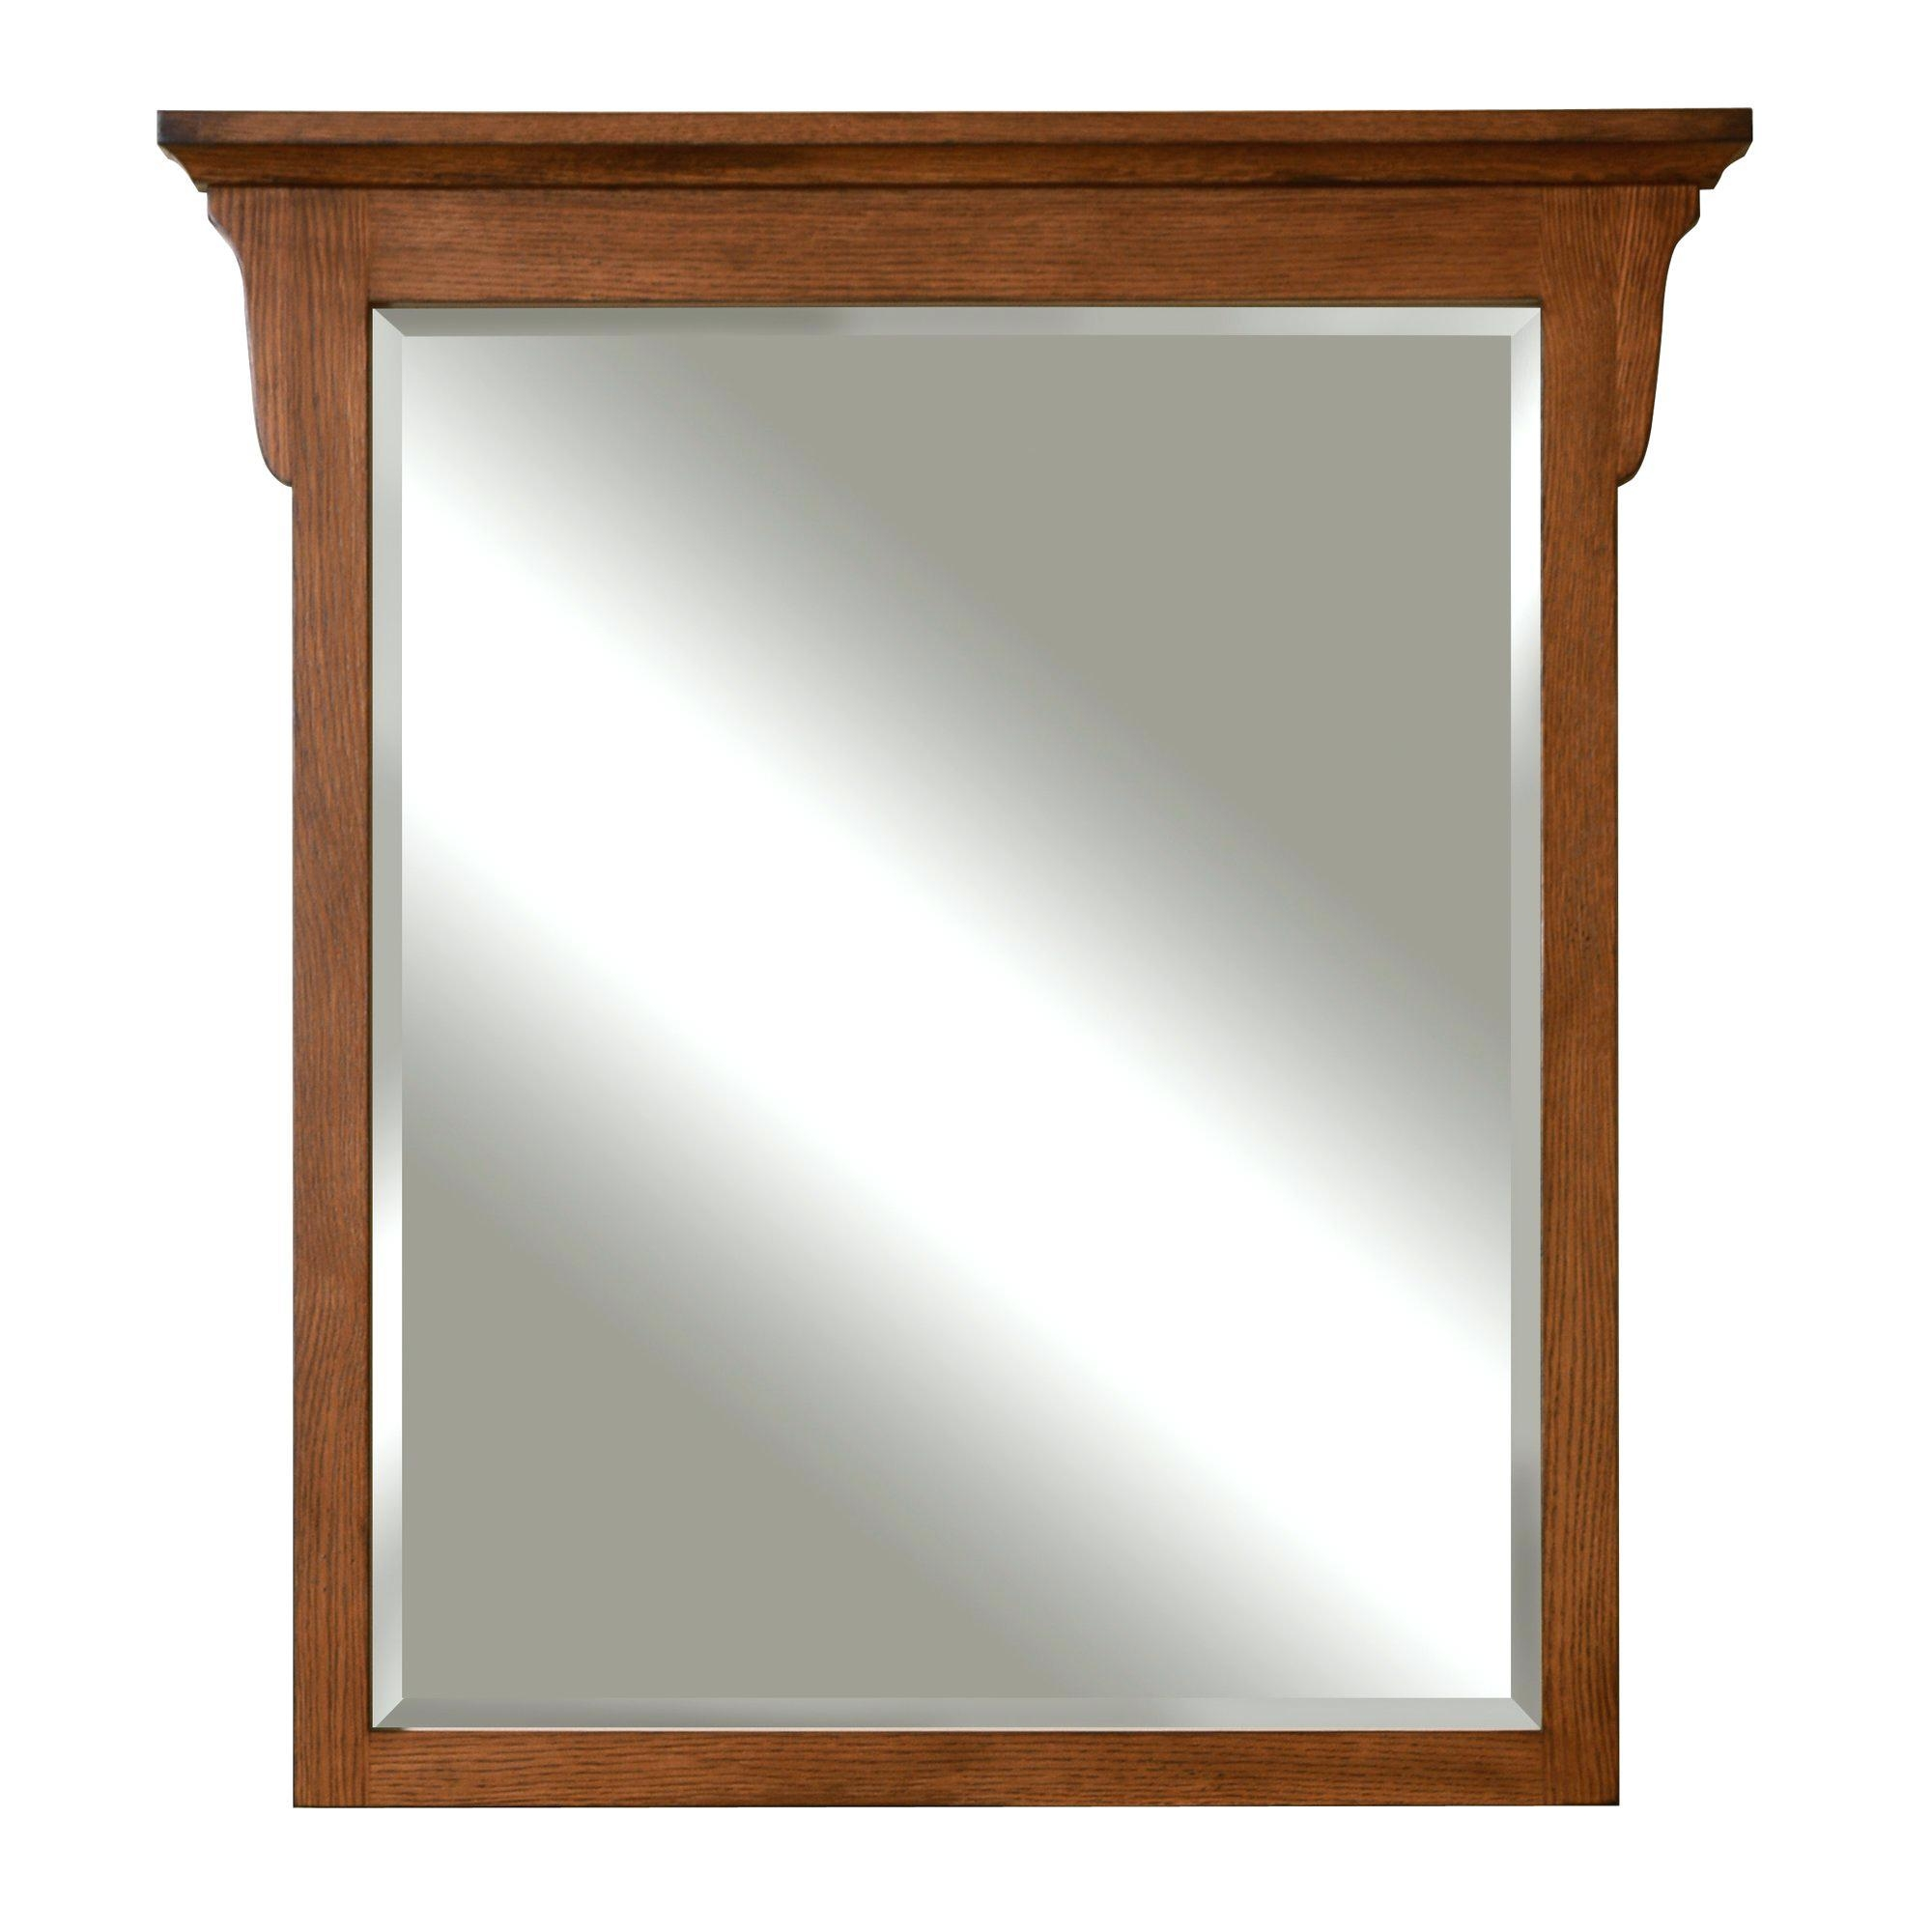 Oak Mirror Rustic Framed Custom Made Distressed Oaklarge Wood With Regard To Large Oak Mirrors (Image 15 of 20)